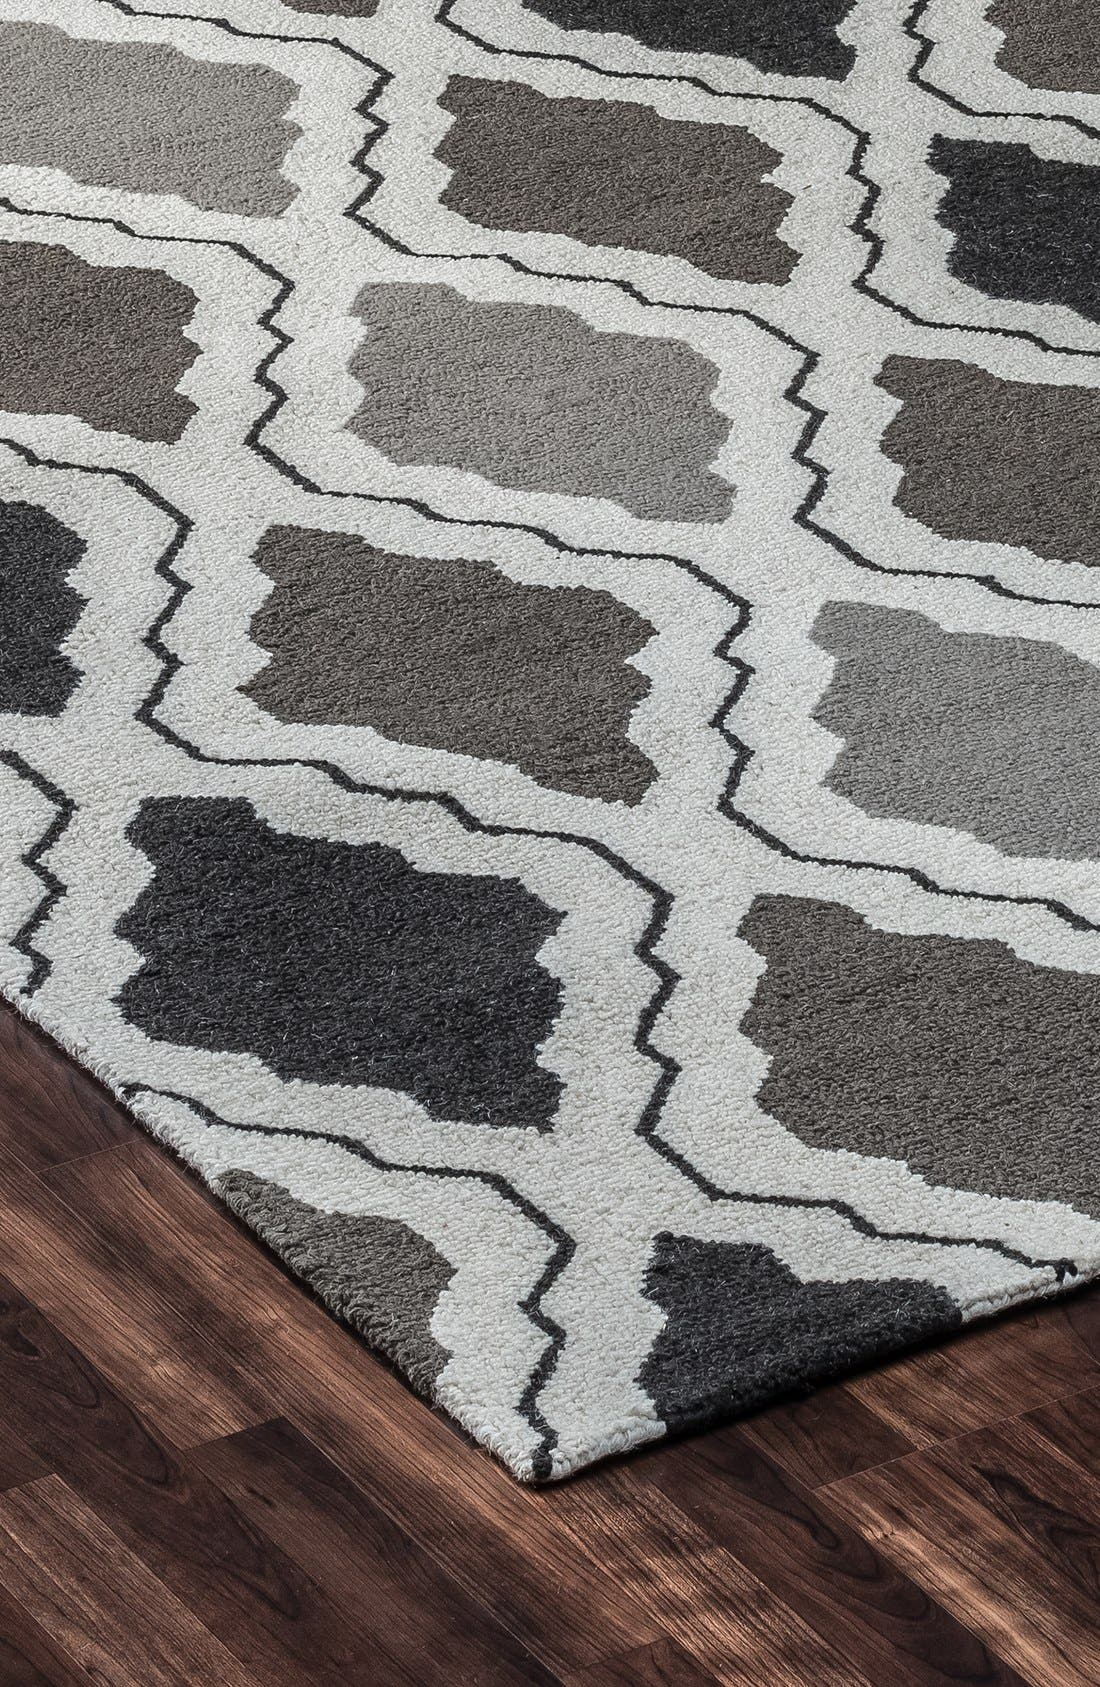 'Ogee' Wool Area Rug,                             Alternate thumbnail 4, color,                             030